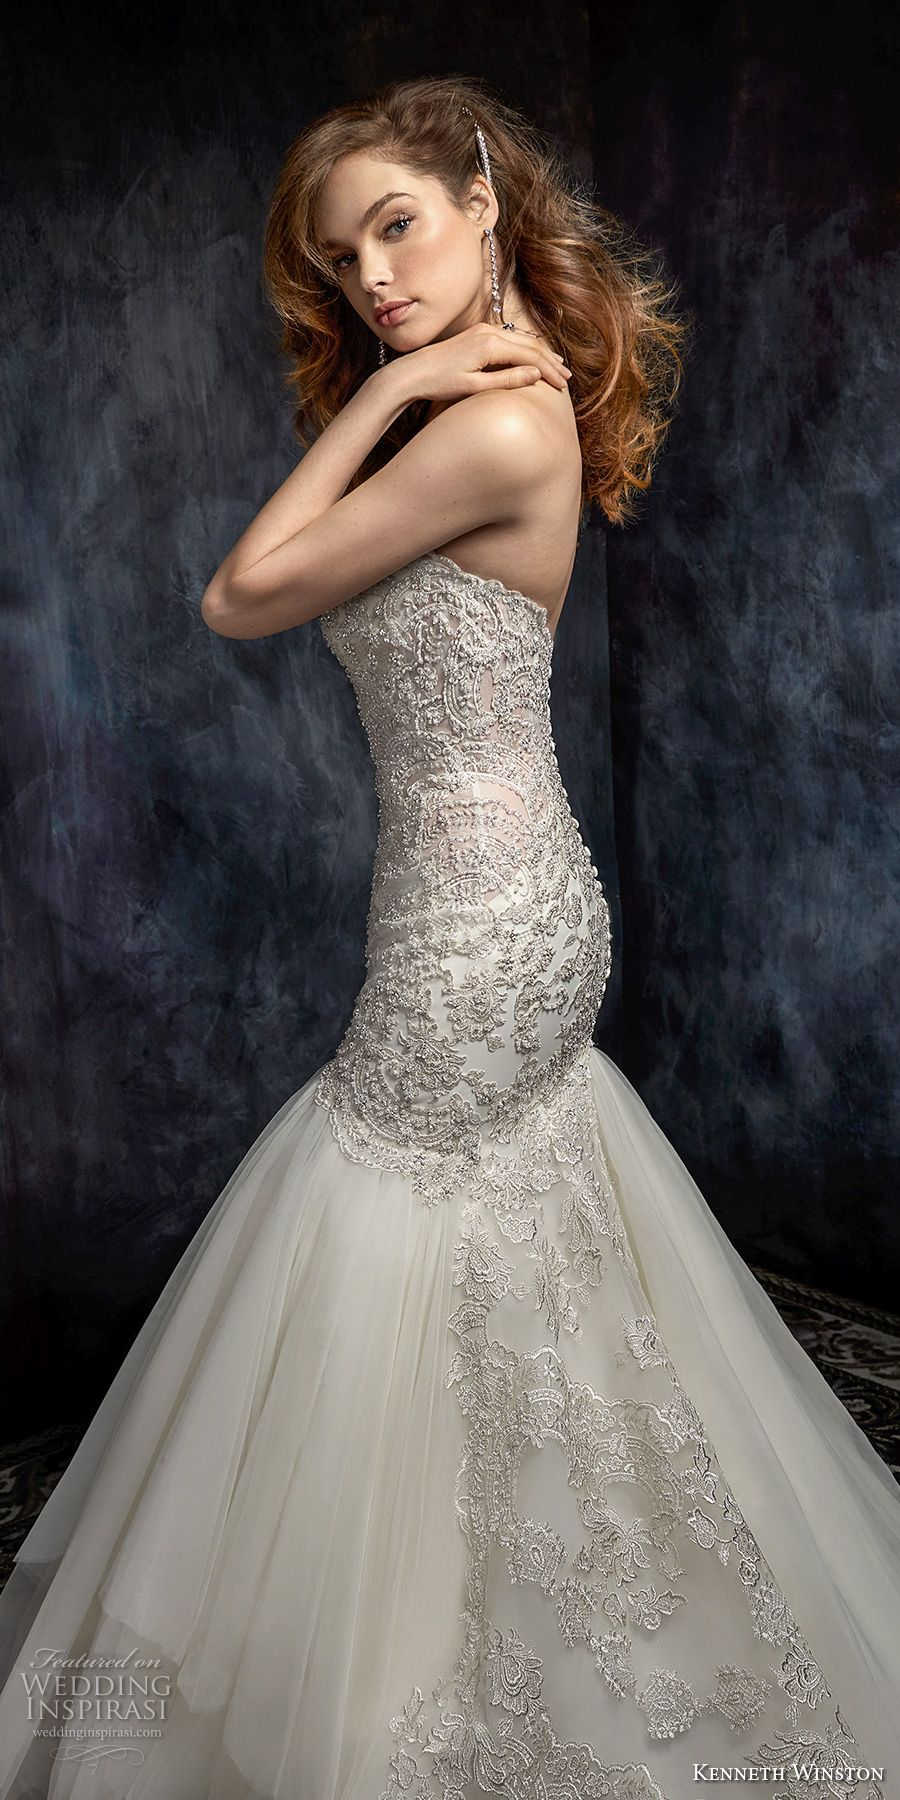 Kenneth Winston Couture Wedding Dresses — Fall 2017 Bridal Collection